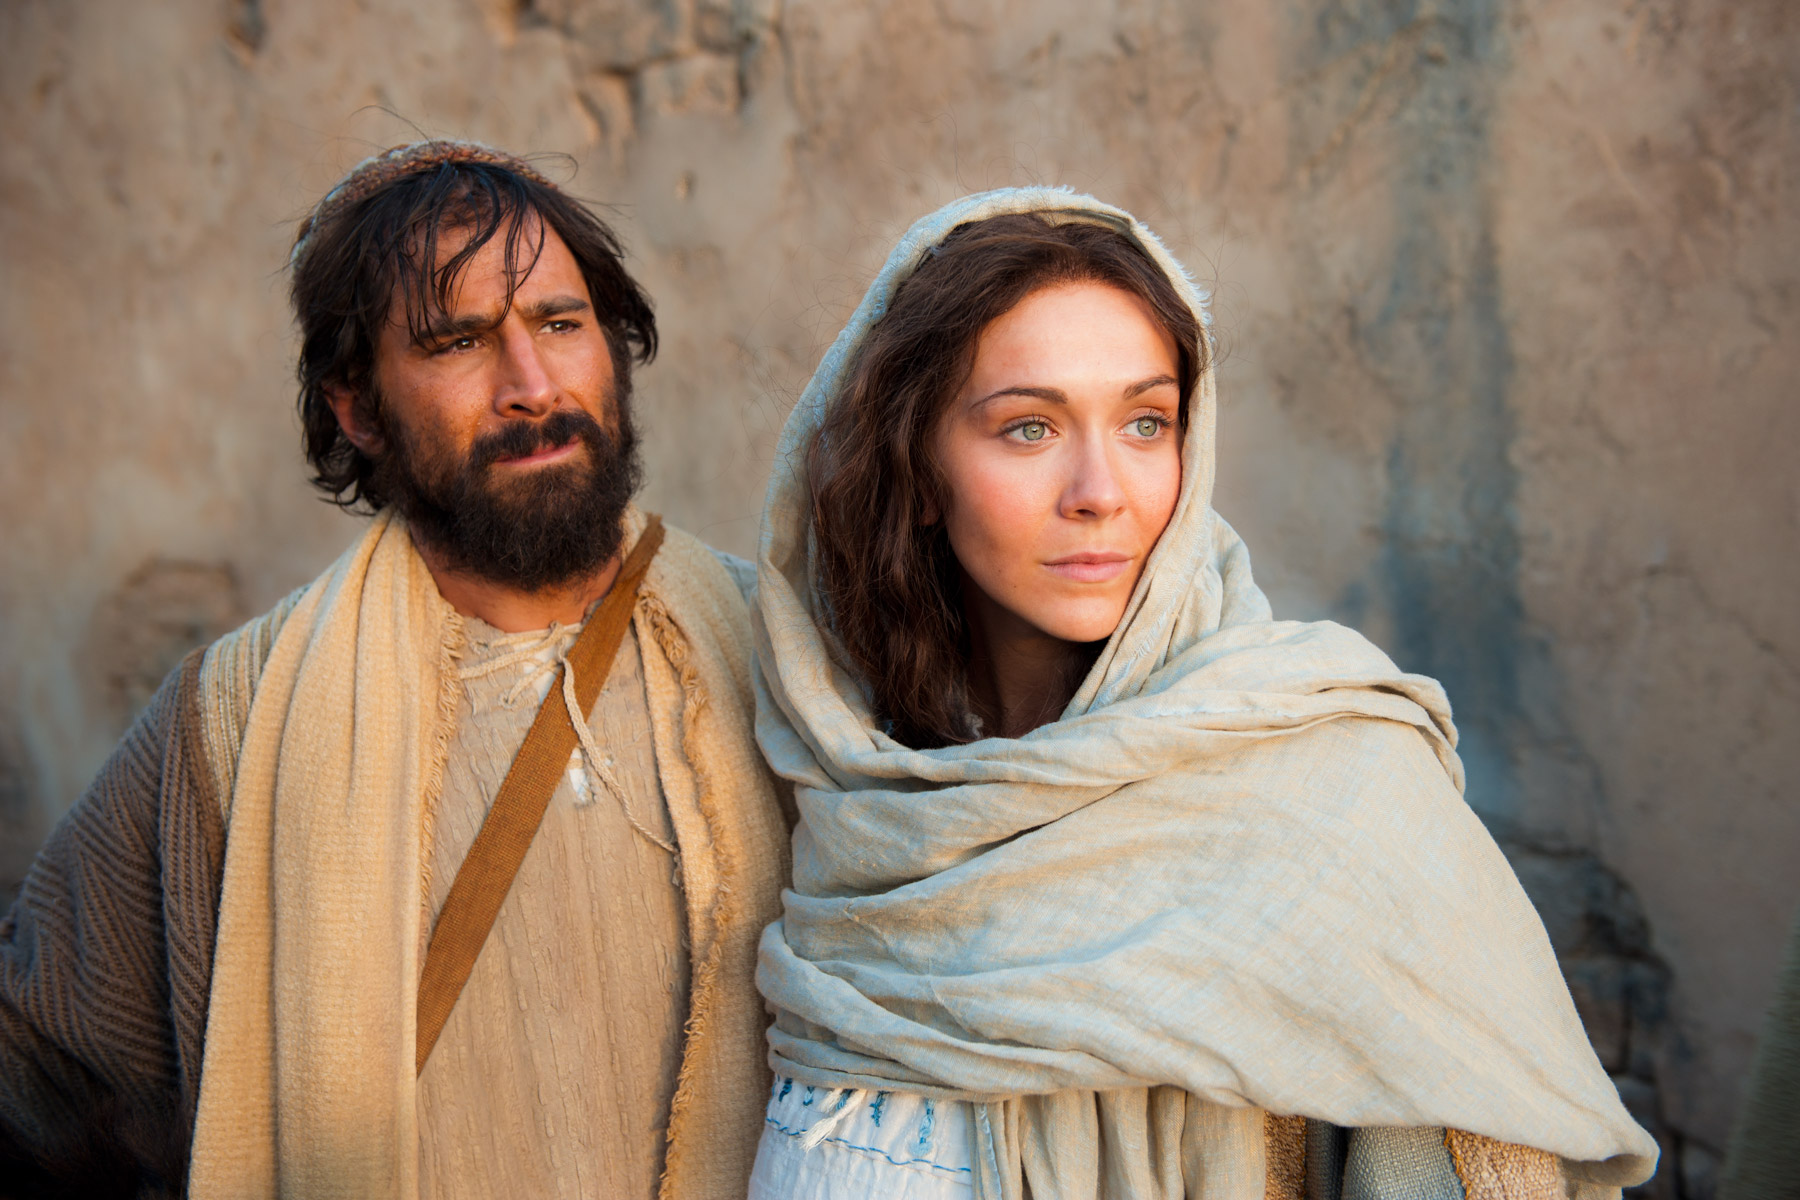 Joseph Und Joseph Mary And Joseph Travel To Bethlehem Mary And Joseph Travel To